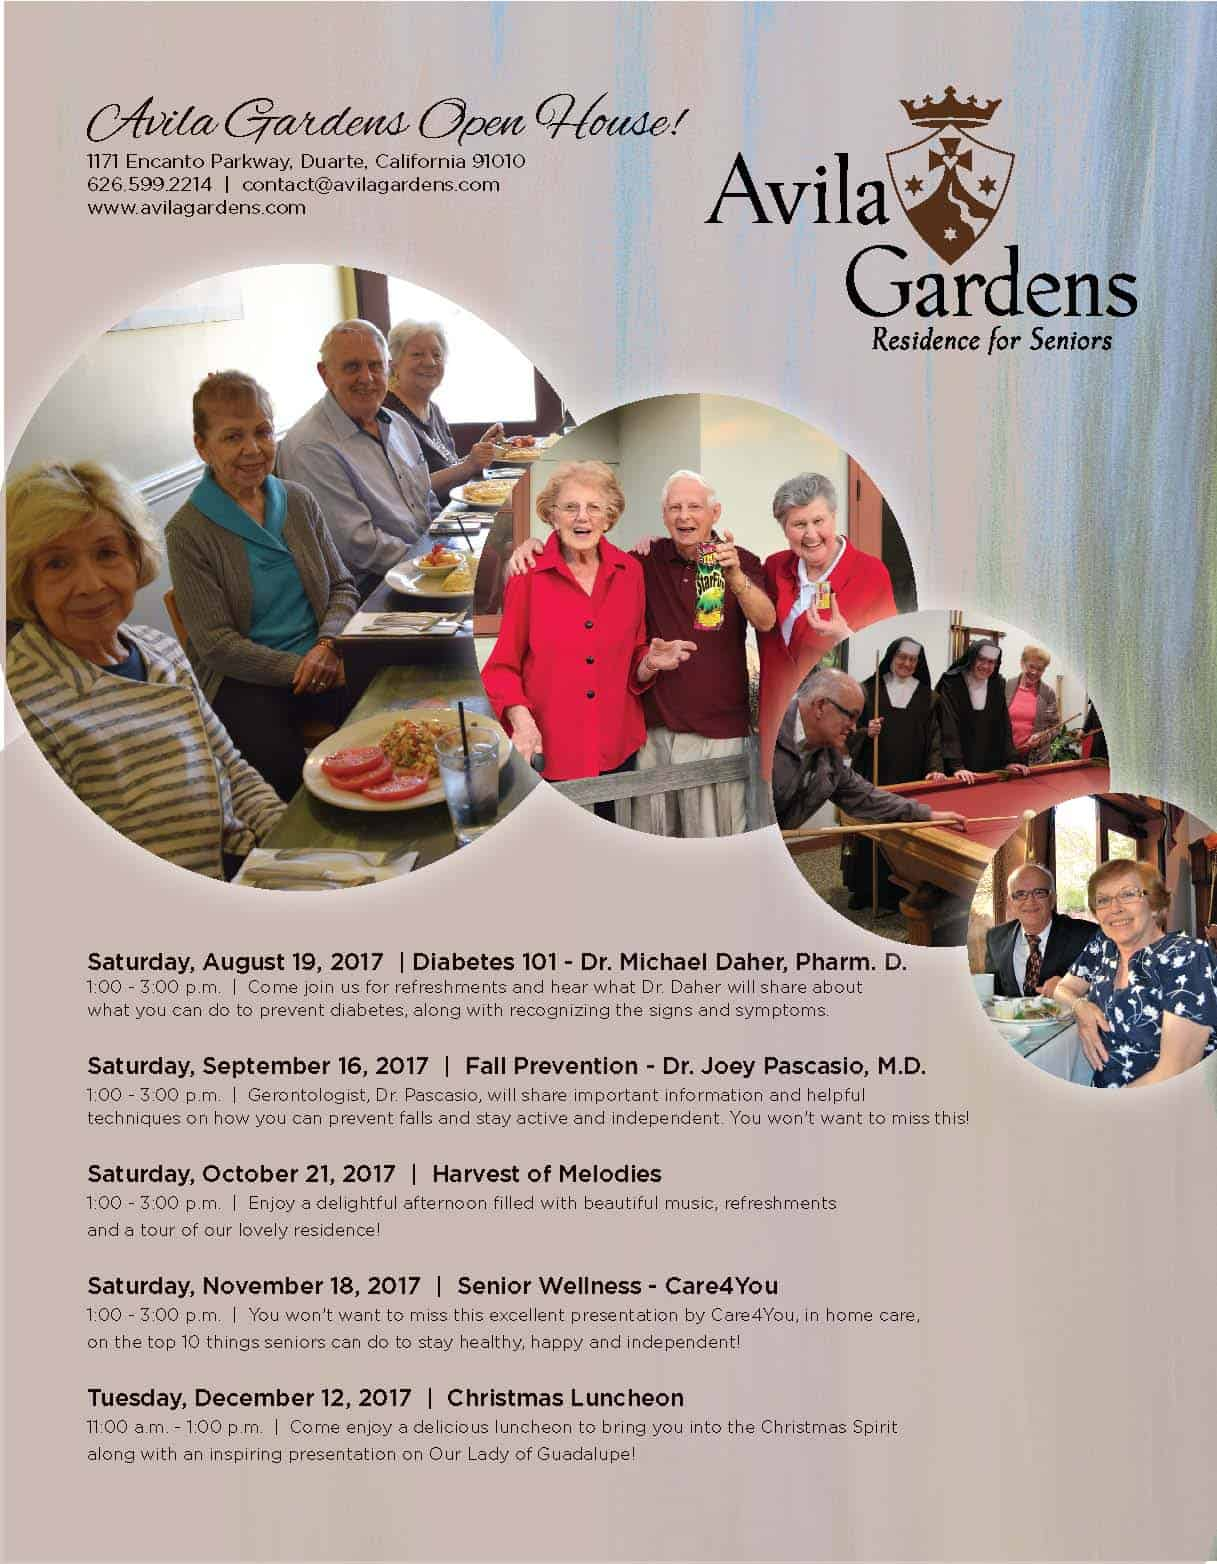 Avila Gardens Open House Flyer